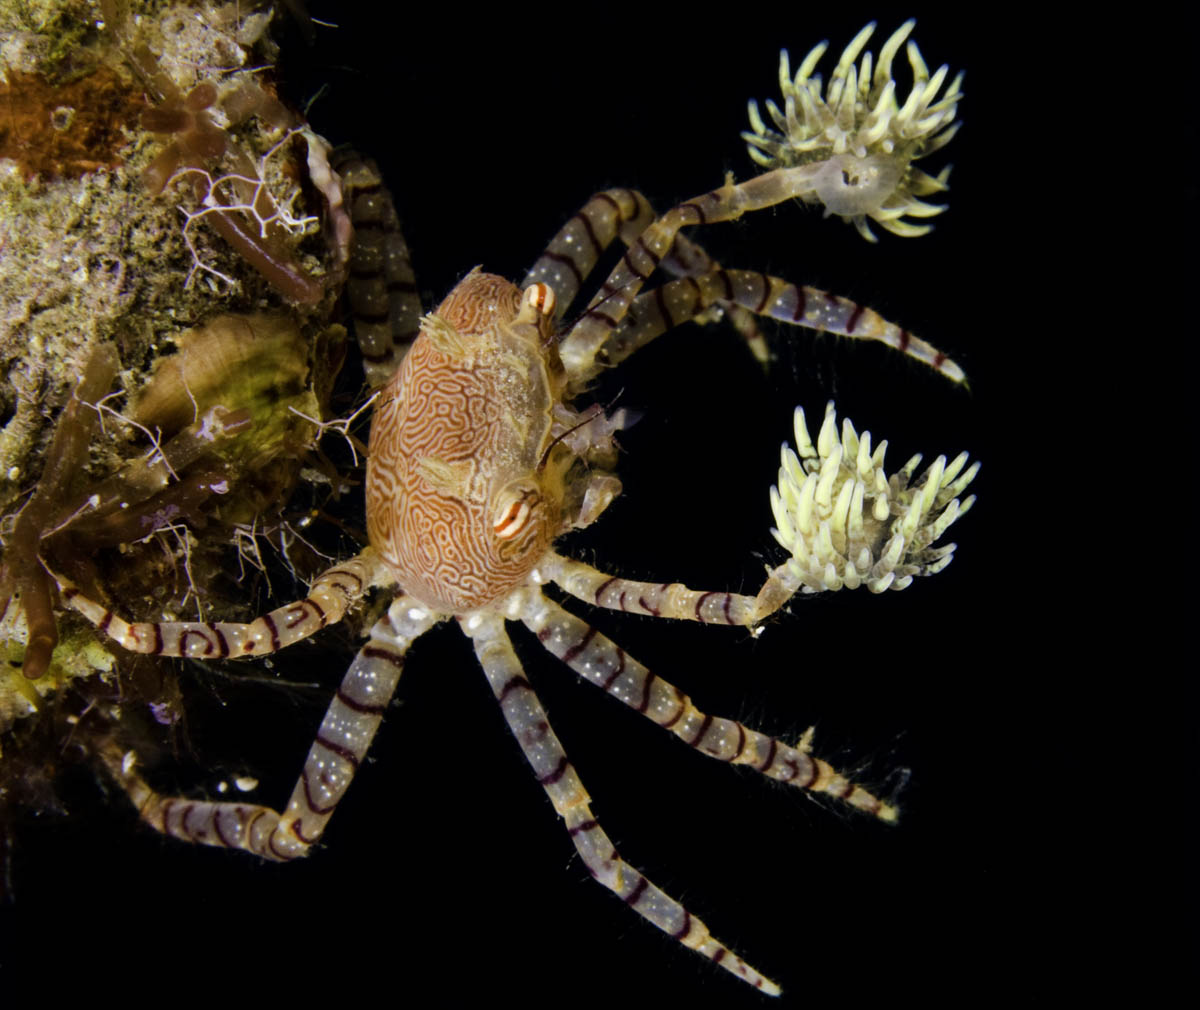 boxer crabs arent as innocent as they look